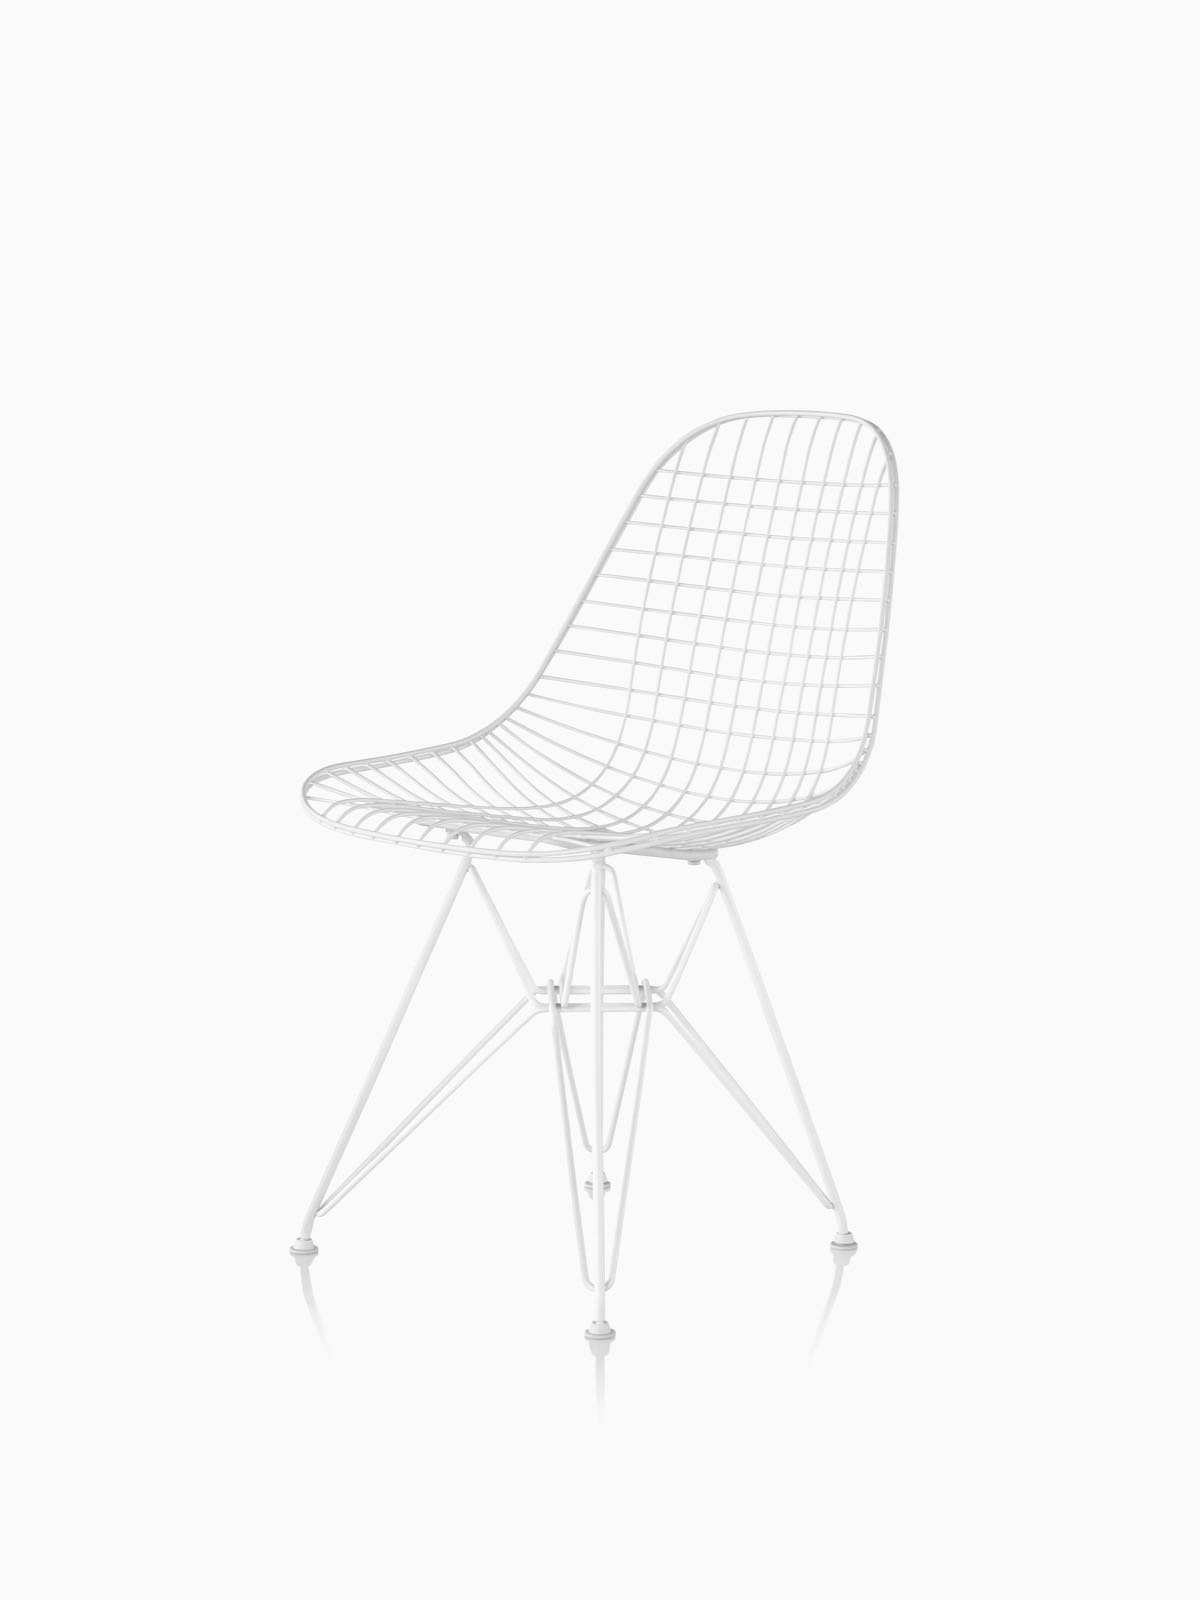 Pool Chairs Revit